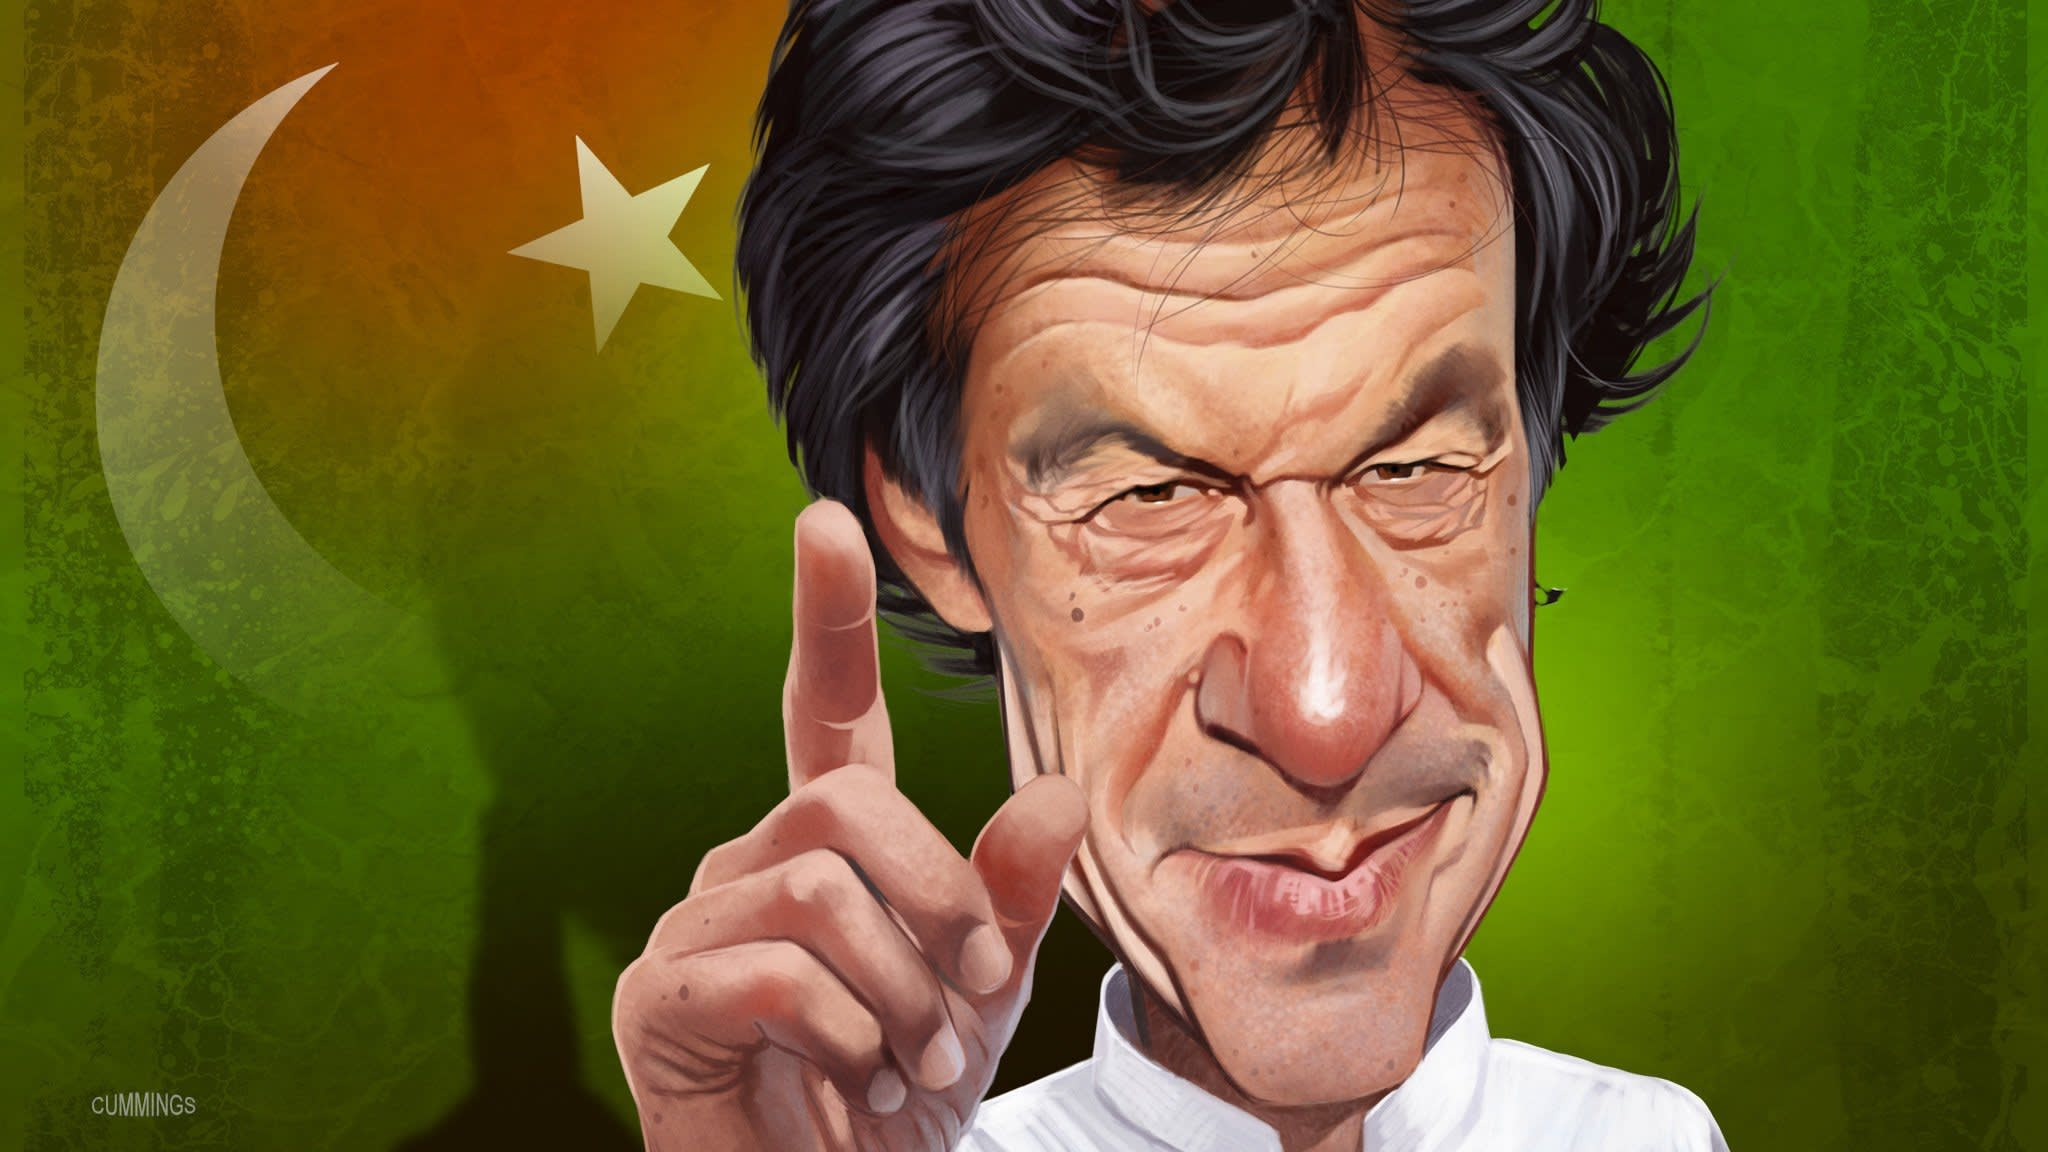 Imran Khan, cricket star with a taste for victory